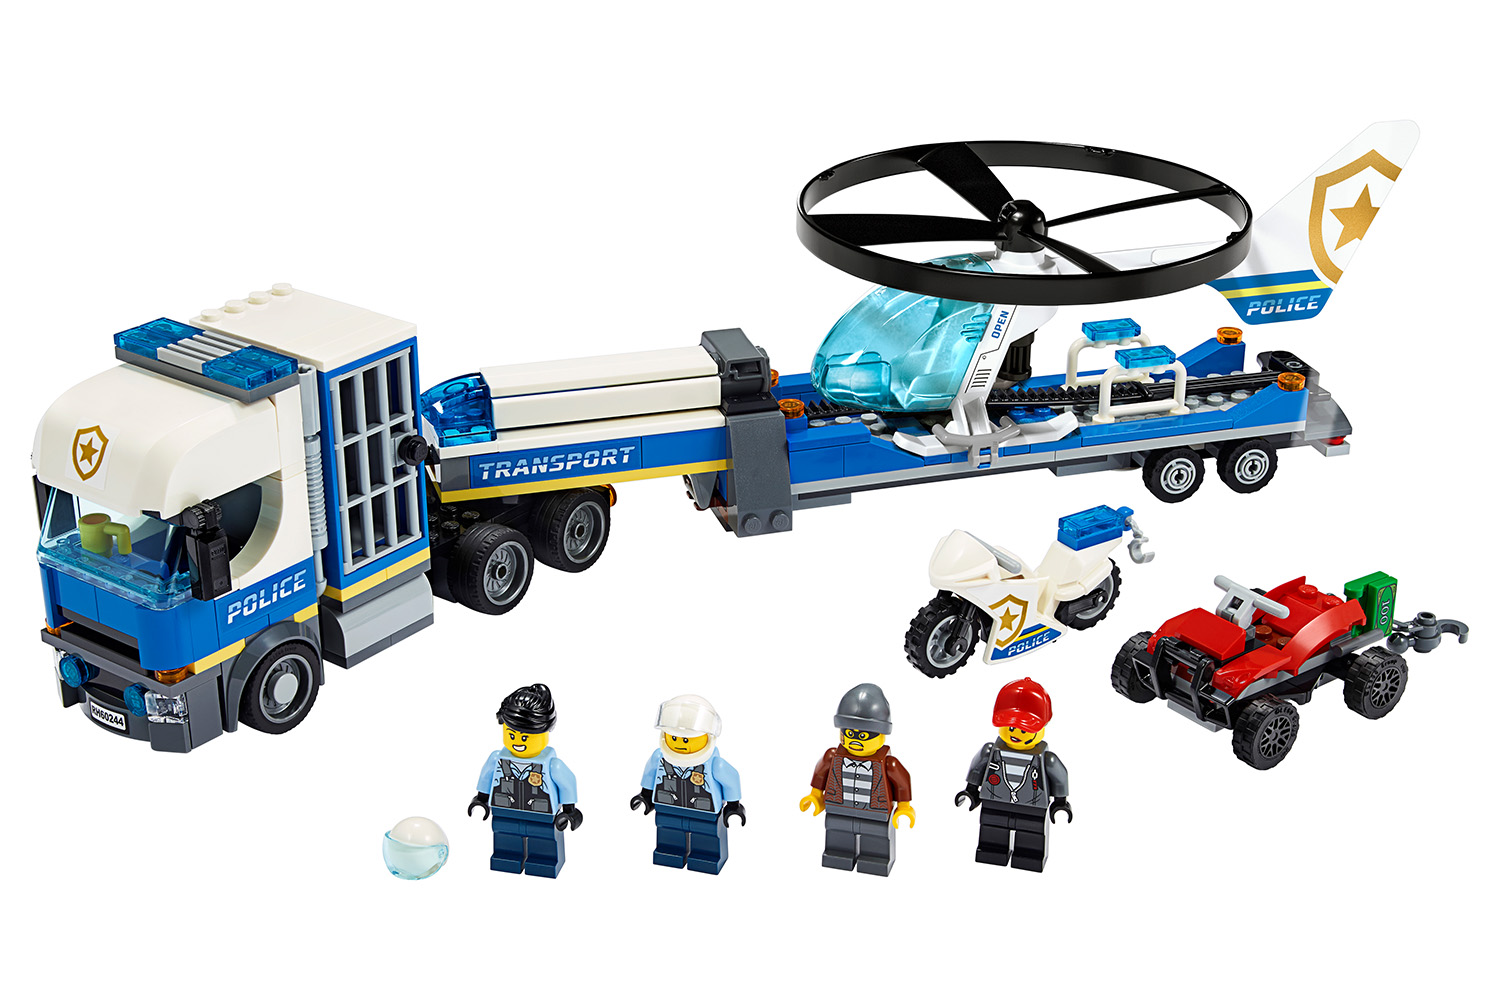 lego-city-polizeihubschrauber-transport-60244/